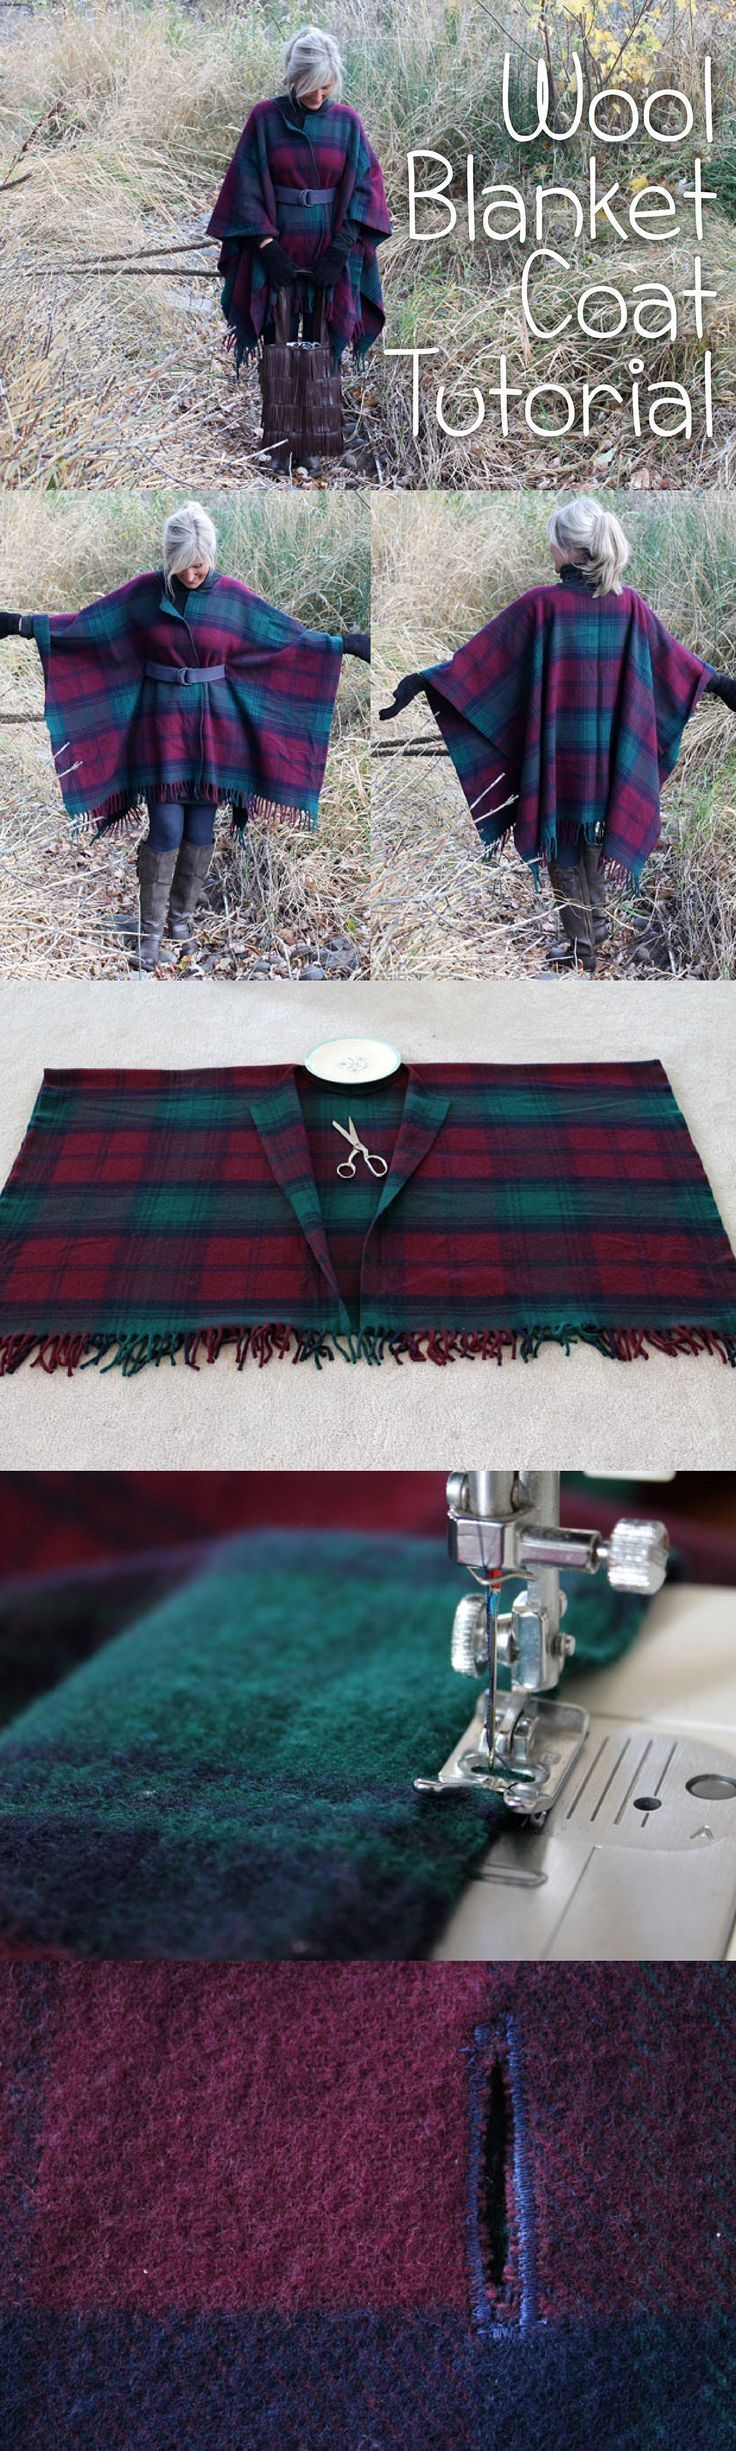 Best diy sew crafty ideas on pinterest sewing sewing tips and